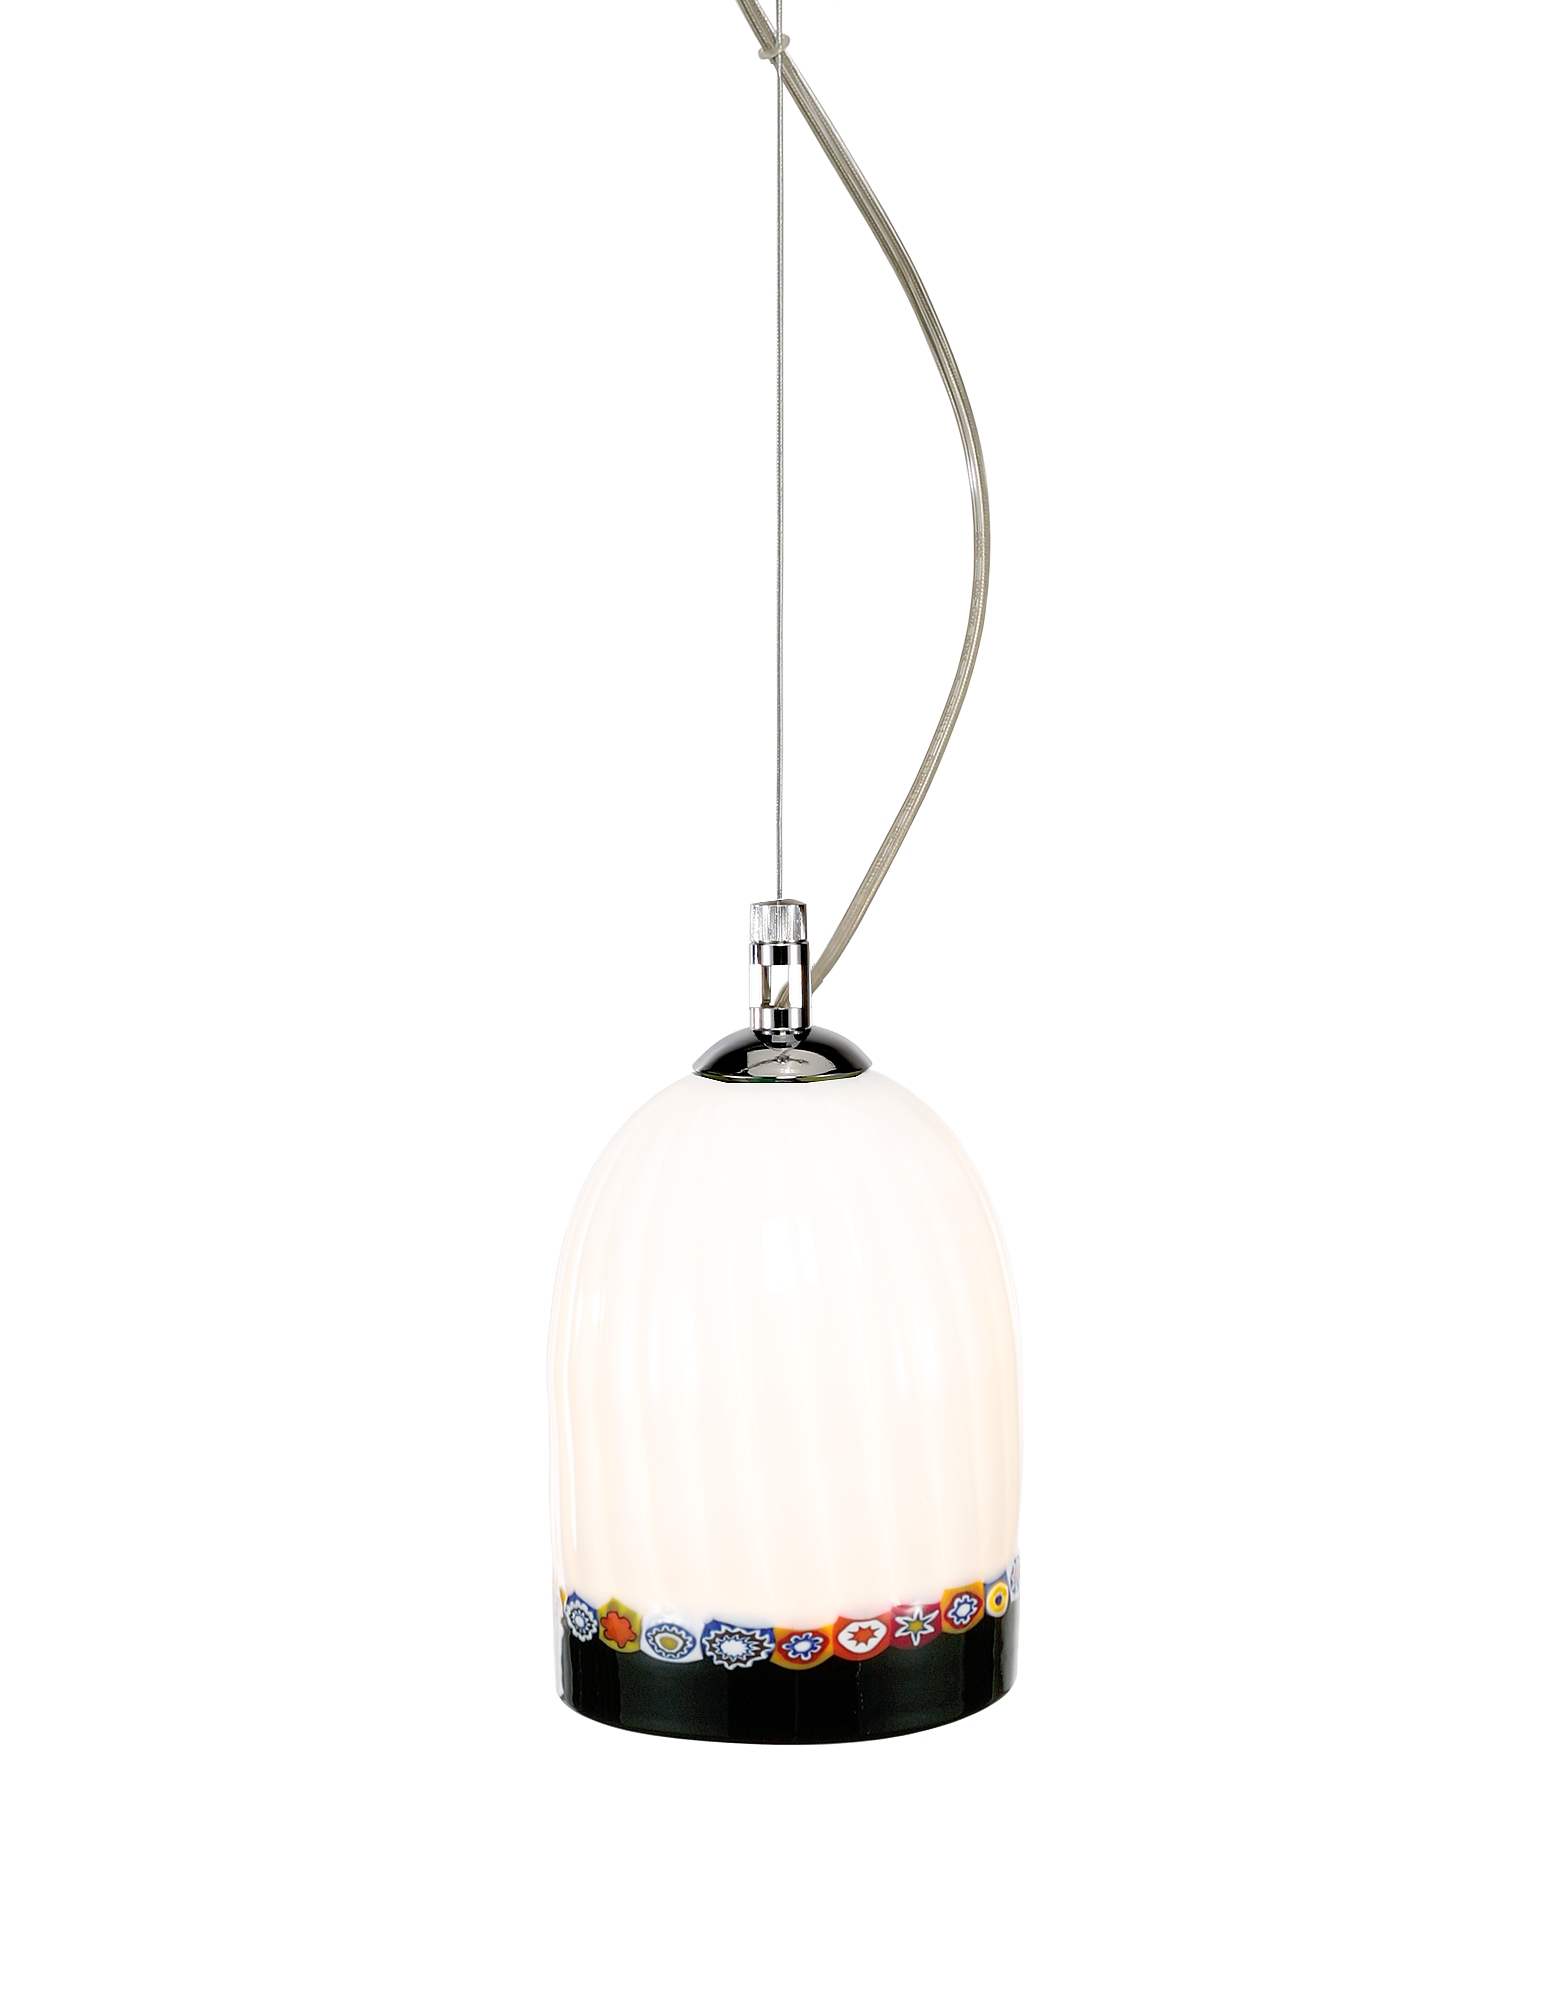 Voltolina Designer Decor & Lighting, Greca - Cream Murano Handmade Glass Pendant Lamp